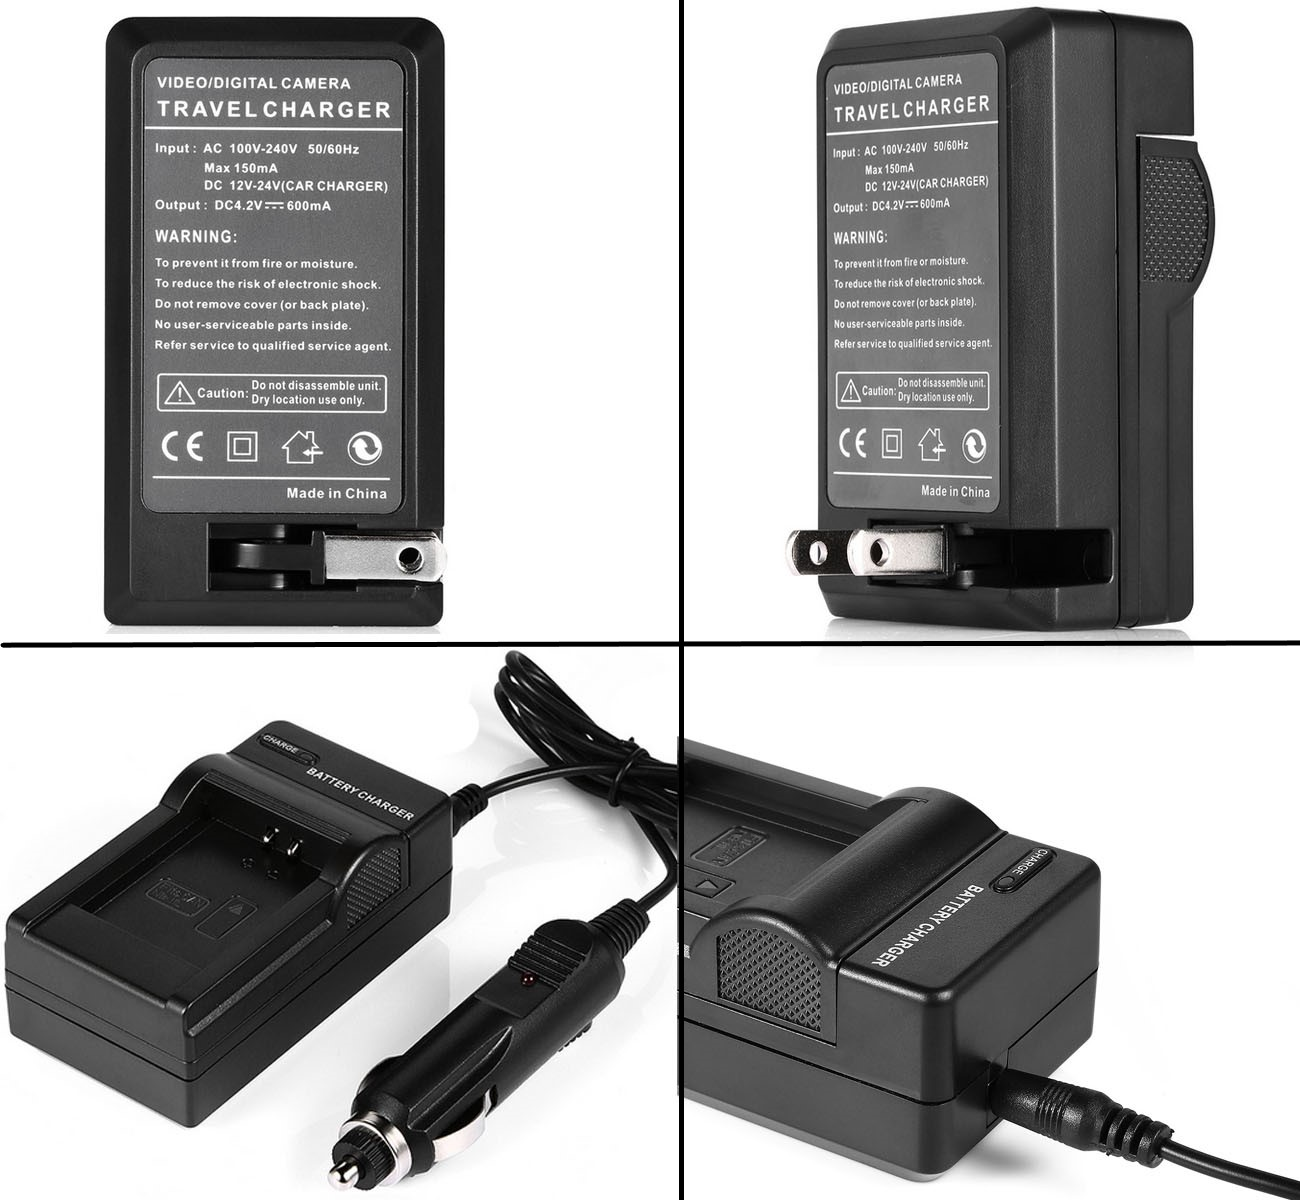 HDR-CX520V HDR-CX320 HDR-CX740 Handycam Camcorder HDR-CX720V Dual Channel Battery Charger for Sony HDR-CX220 HDR-CX420